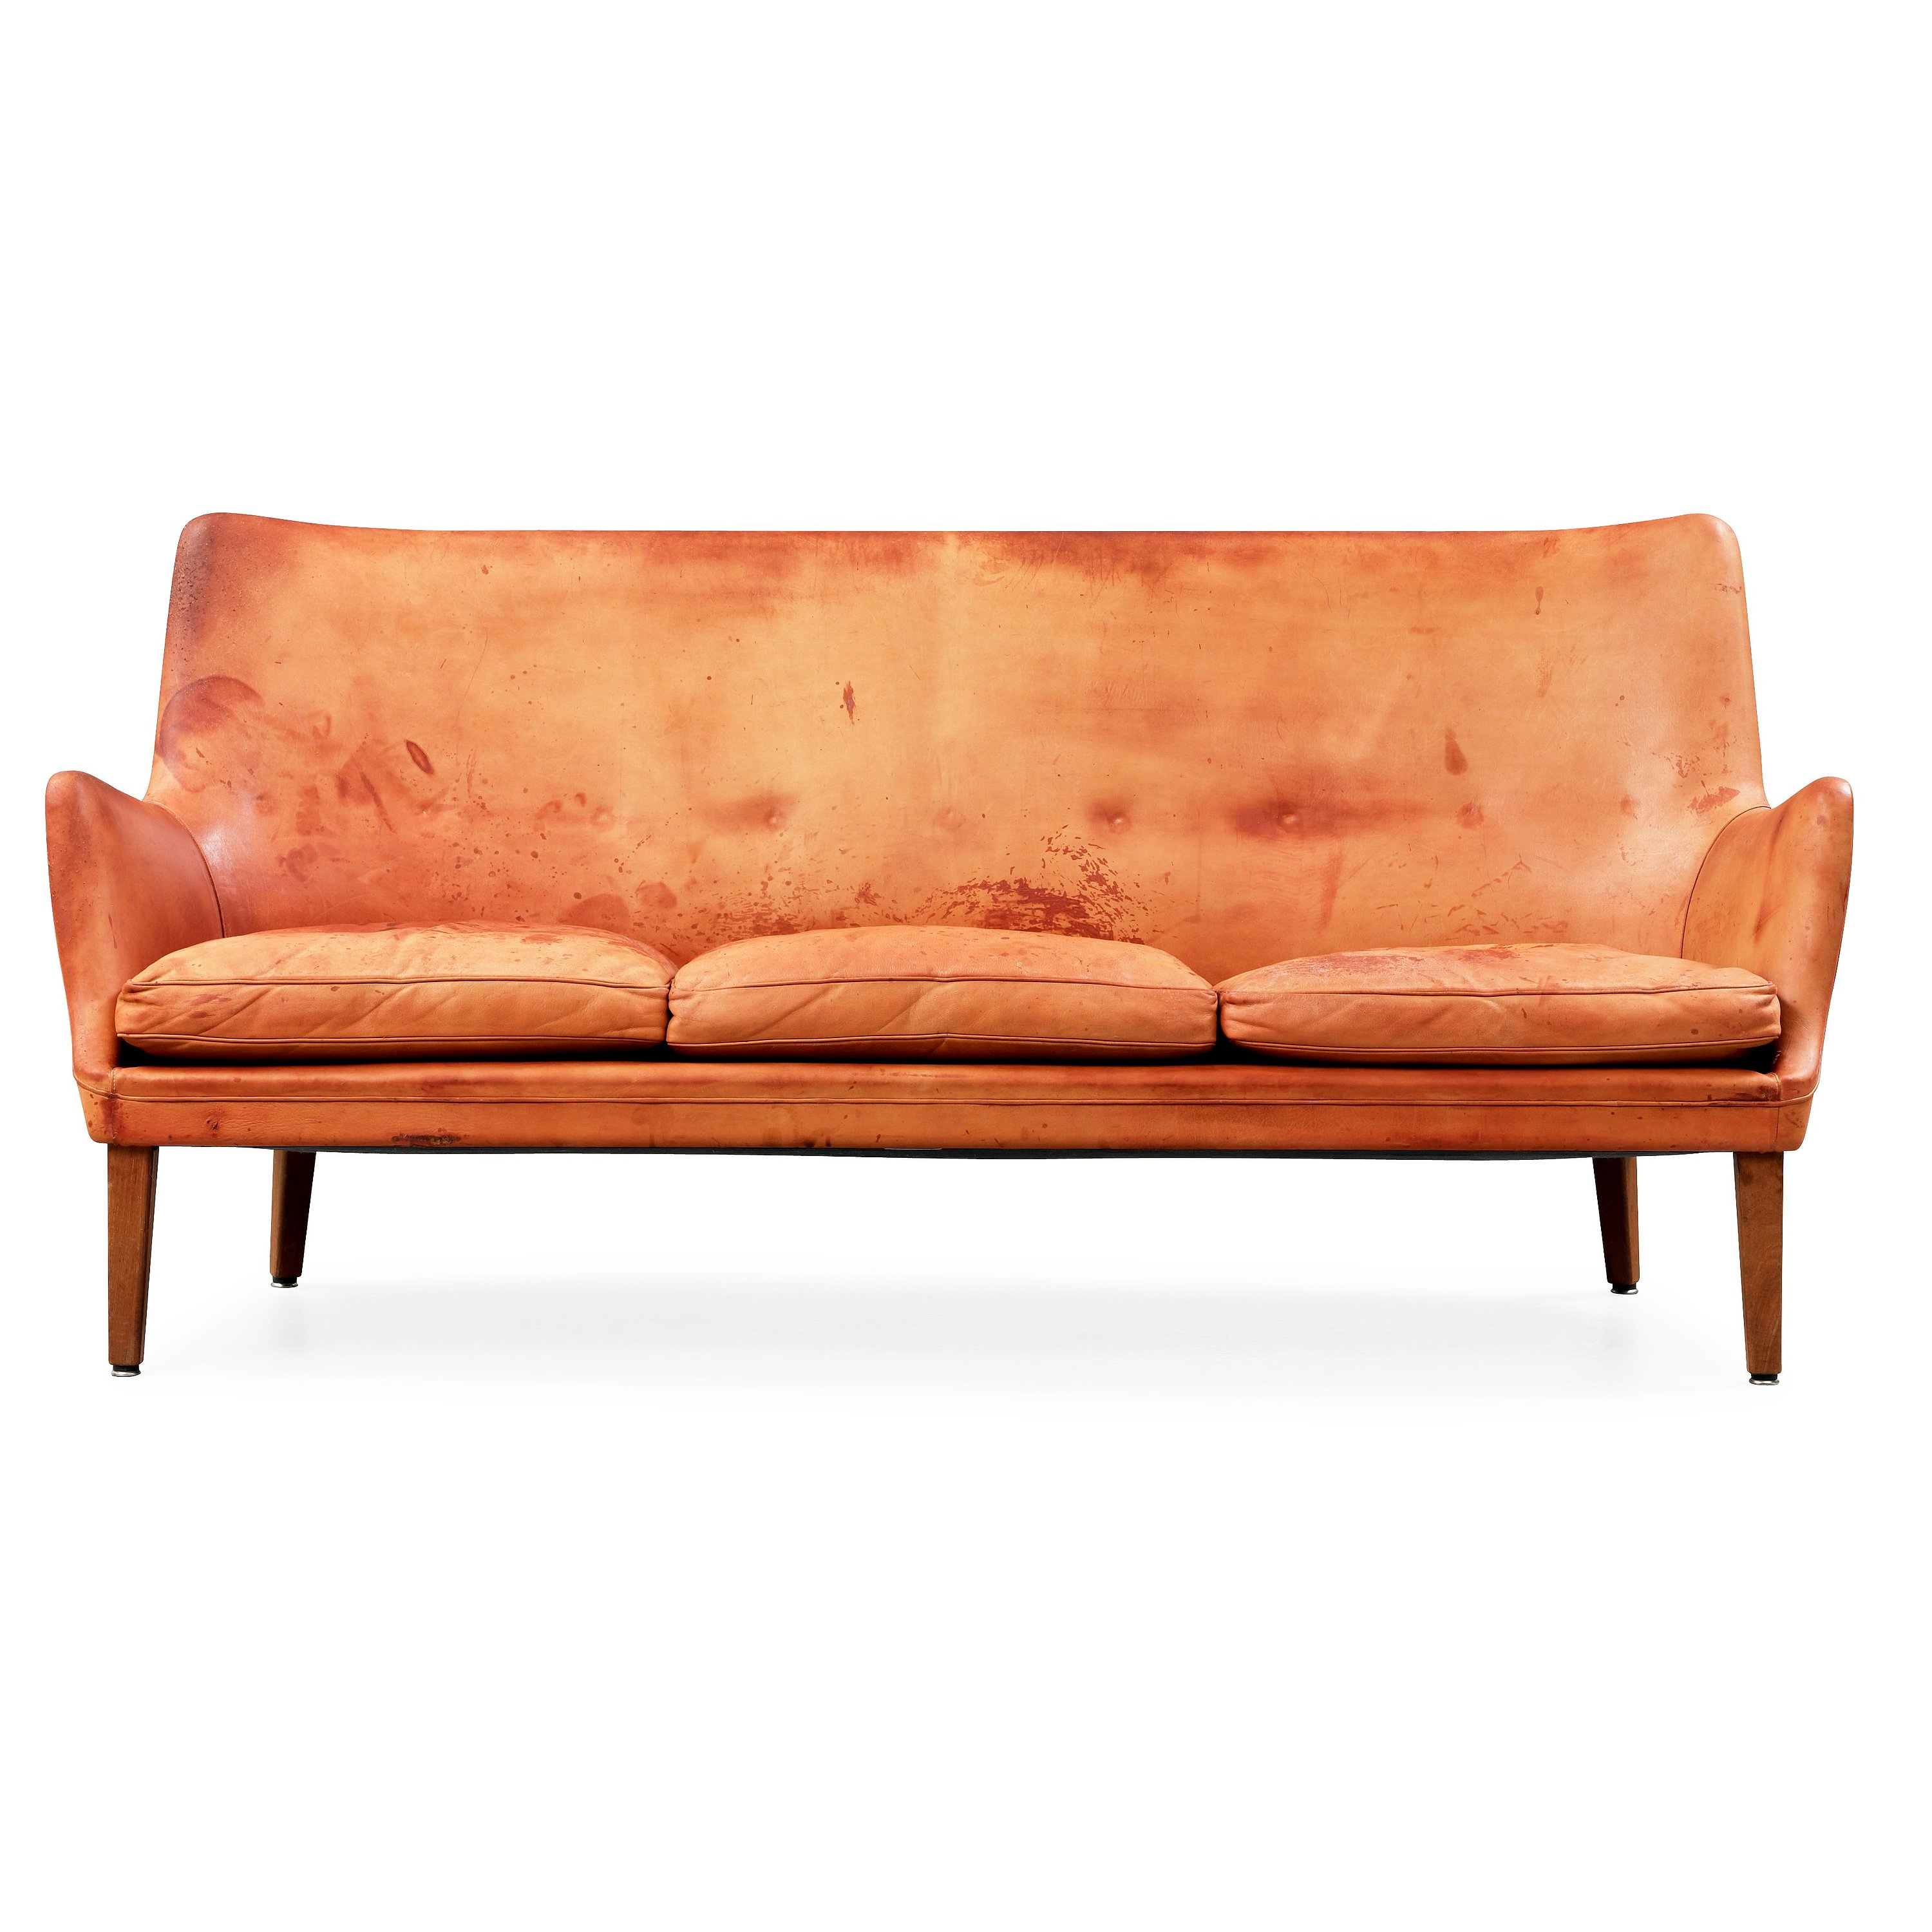 Sofa 60s An Arne Vodder Brown Leather Sofa Executed By Ivan Schlechter